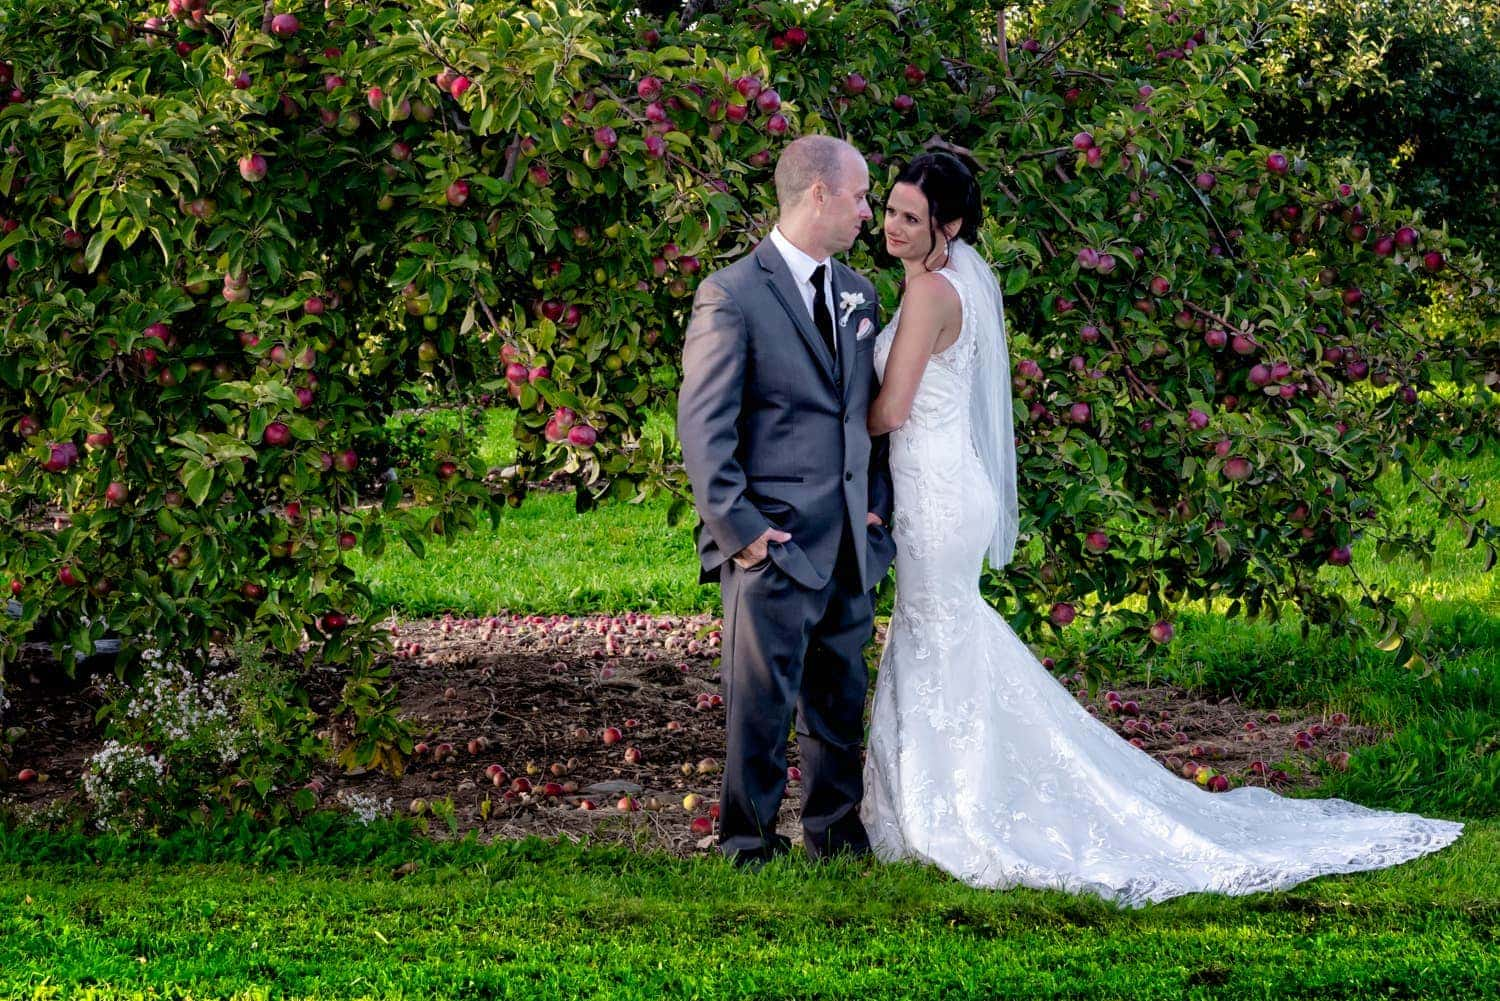 bride and groom in an embrace surrounded by an apple orchard at the Old Orchard Inn in the Annapolis Valley